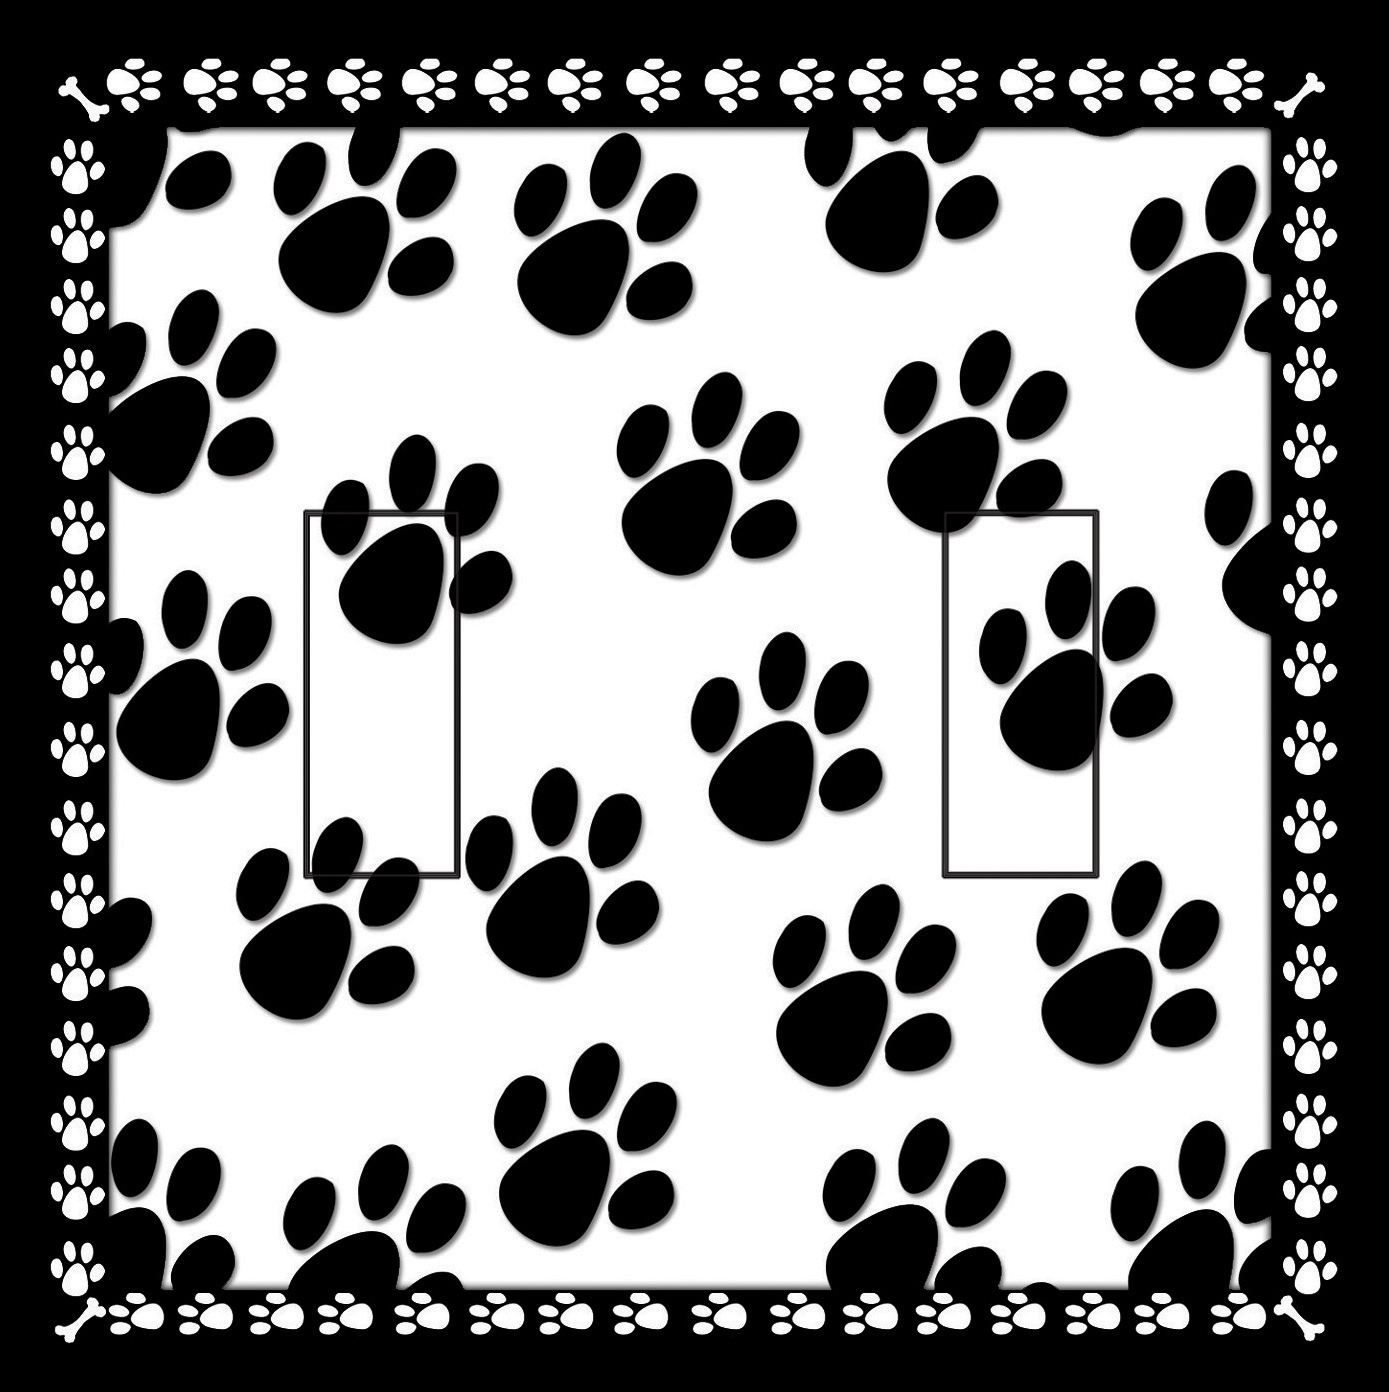 Dog Paw Prints Double Toggle SwitchStix Peel and Stick Switch Plate Cover Décor